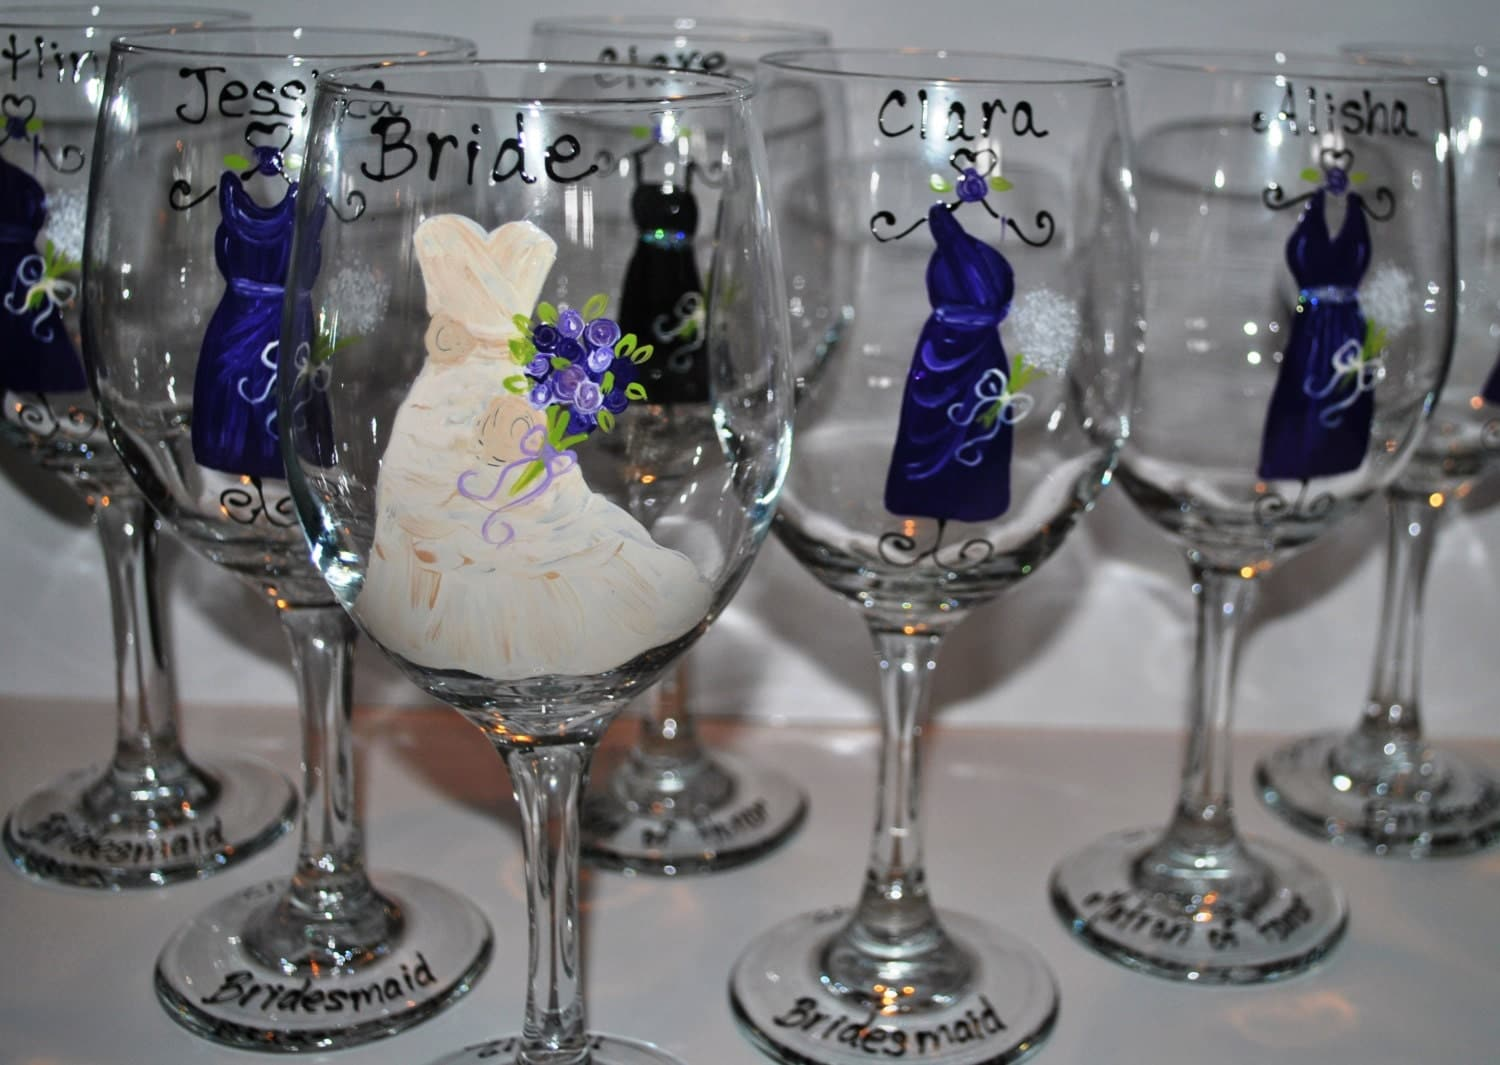 Wedding Gifts Wine: 1 Extra Hand Painted Blue/Navy Bridesmaid Wedding Wine Glasses